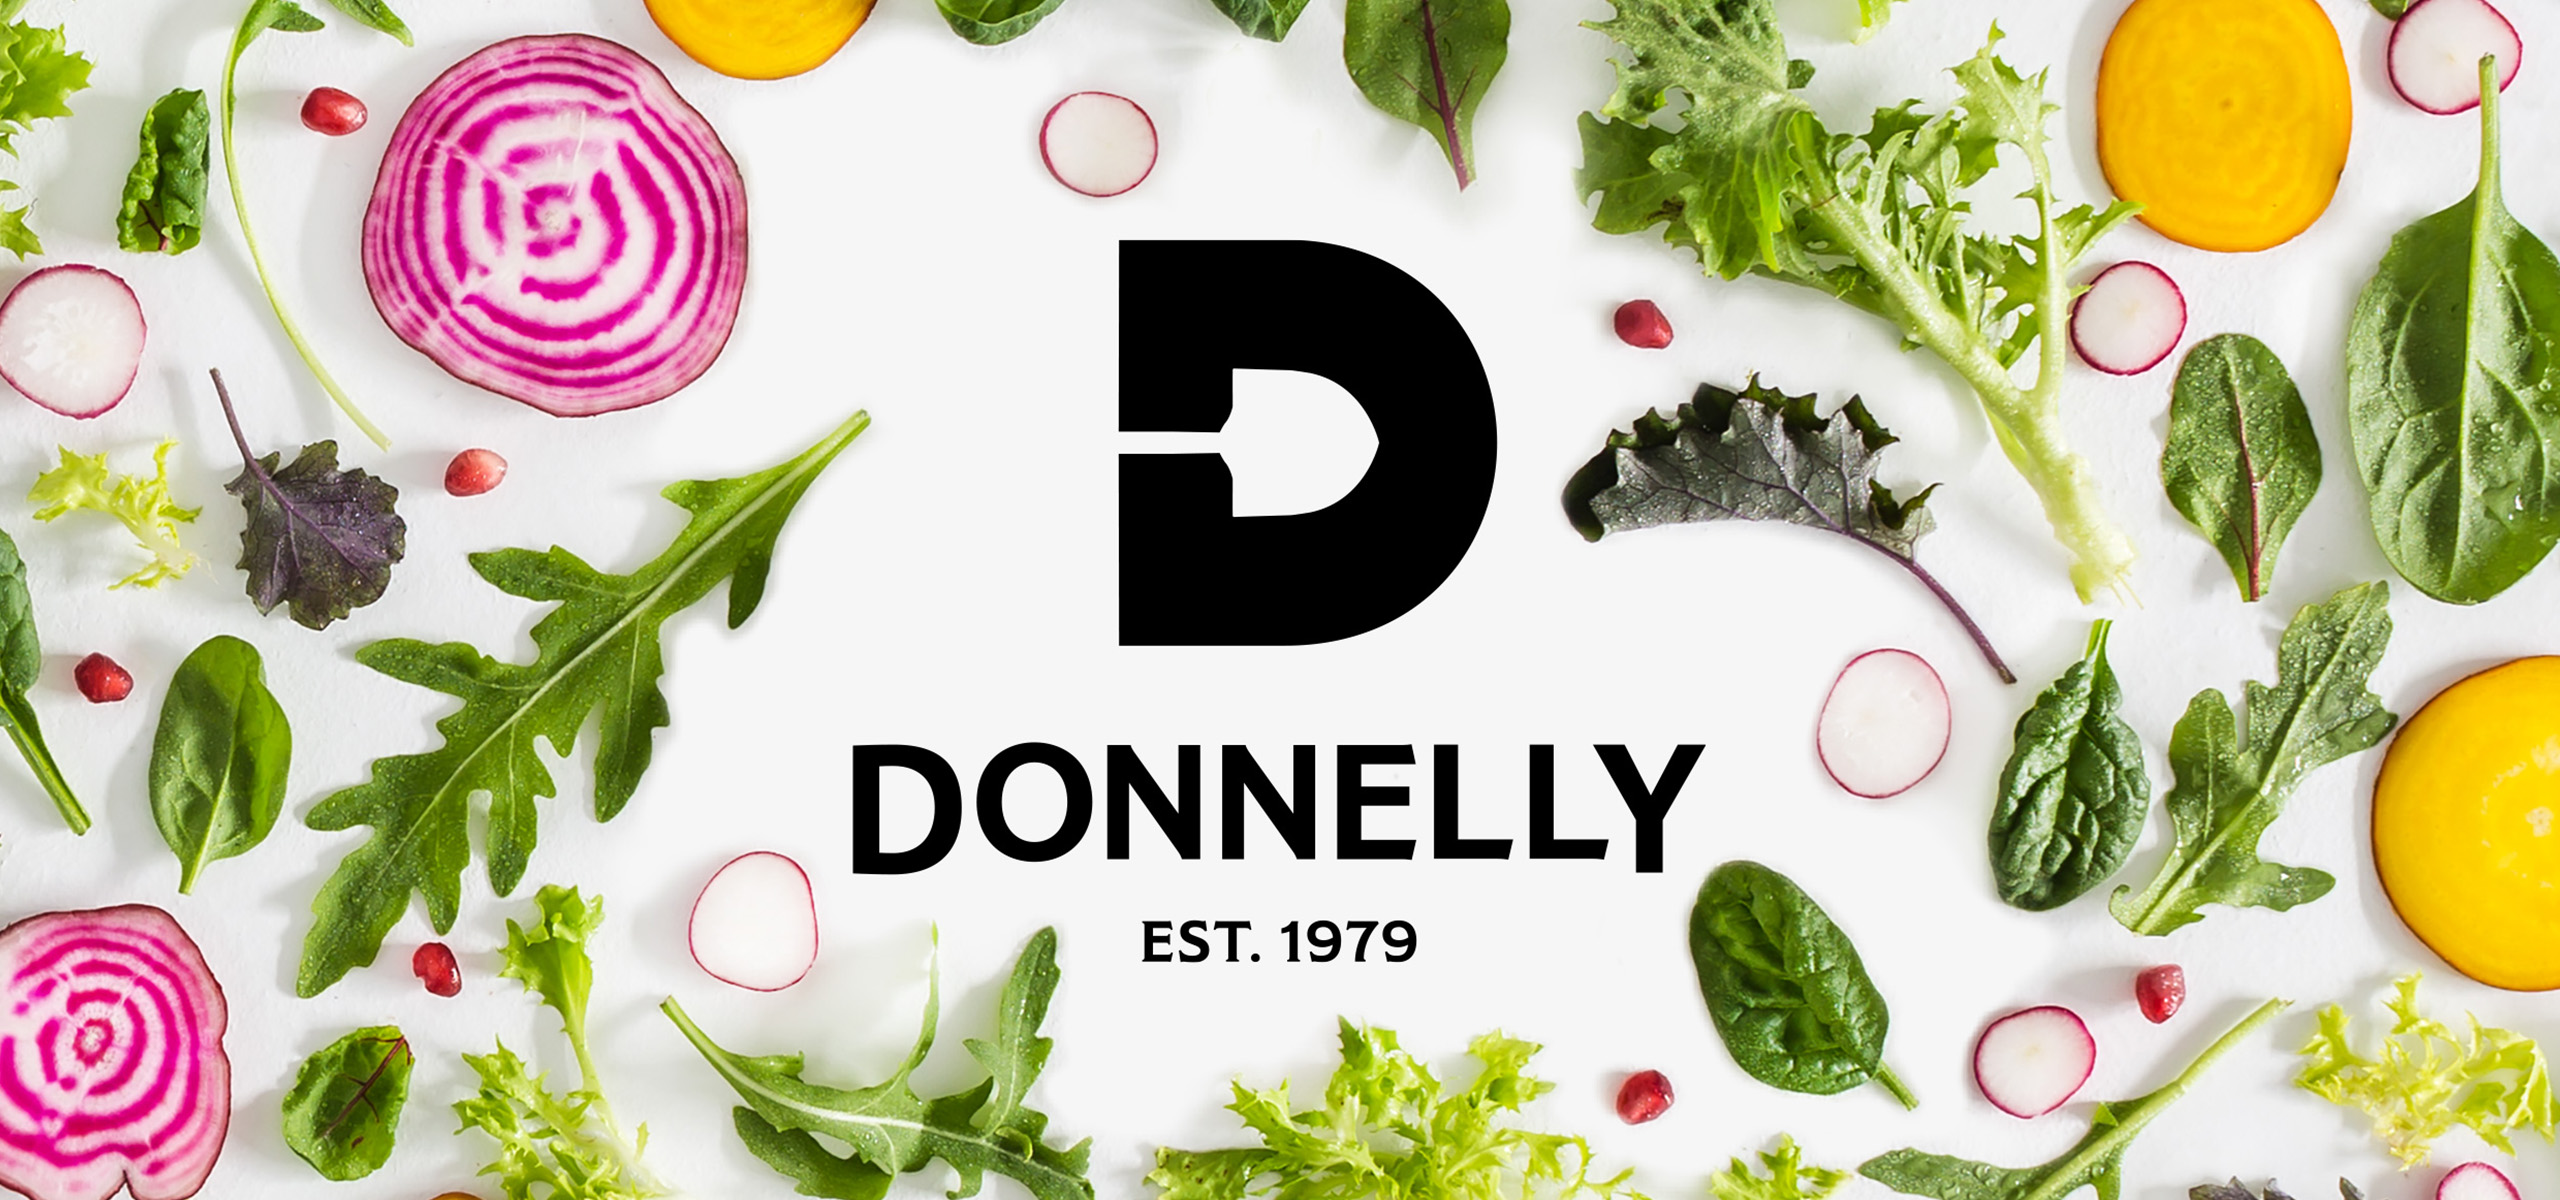 Logo mockup for food brand Donnelly, designed by White Bear Studio